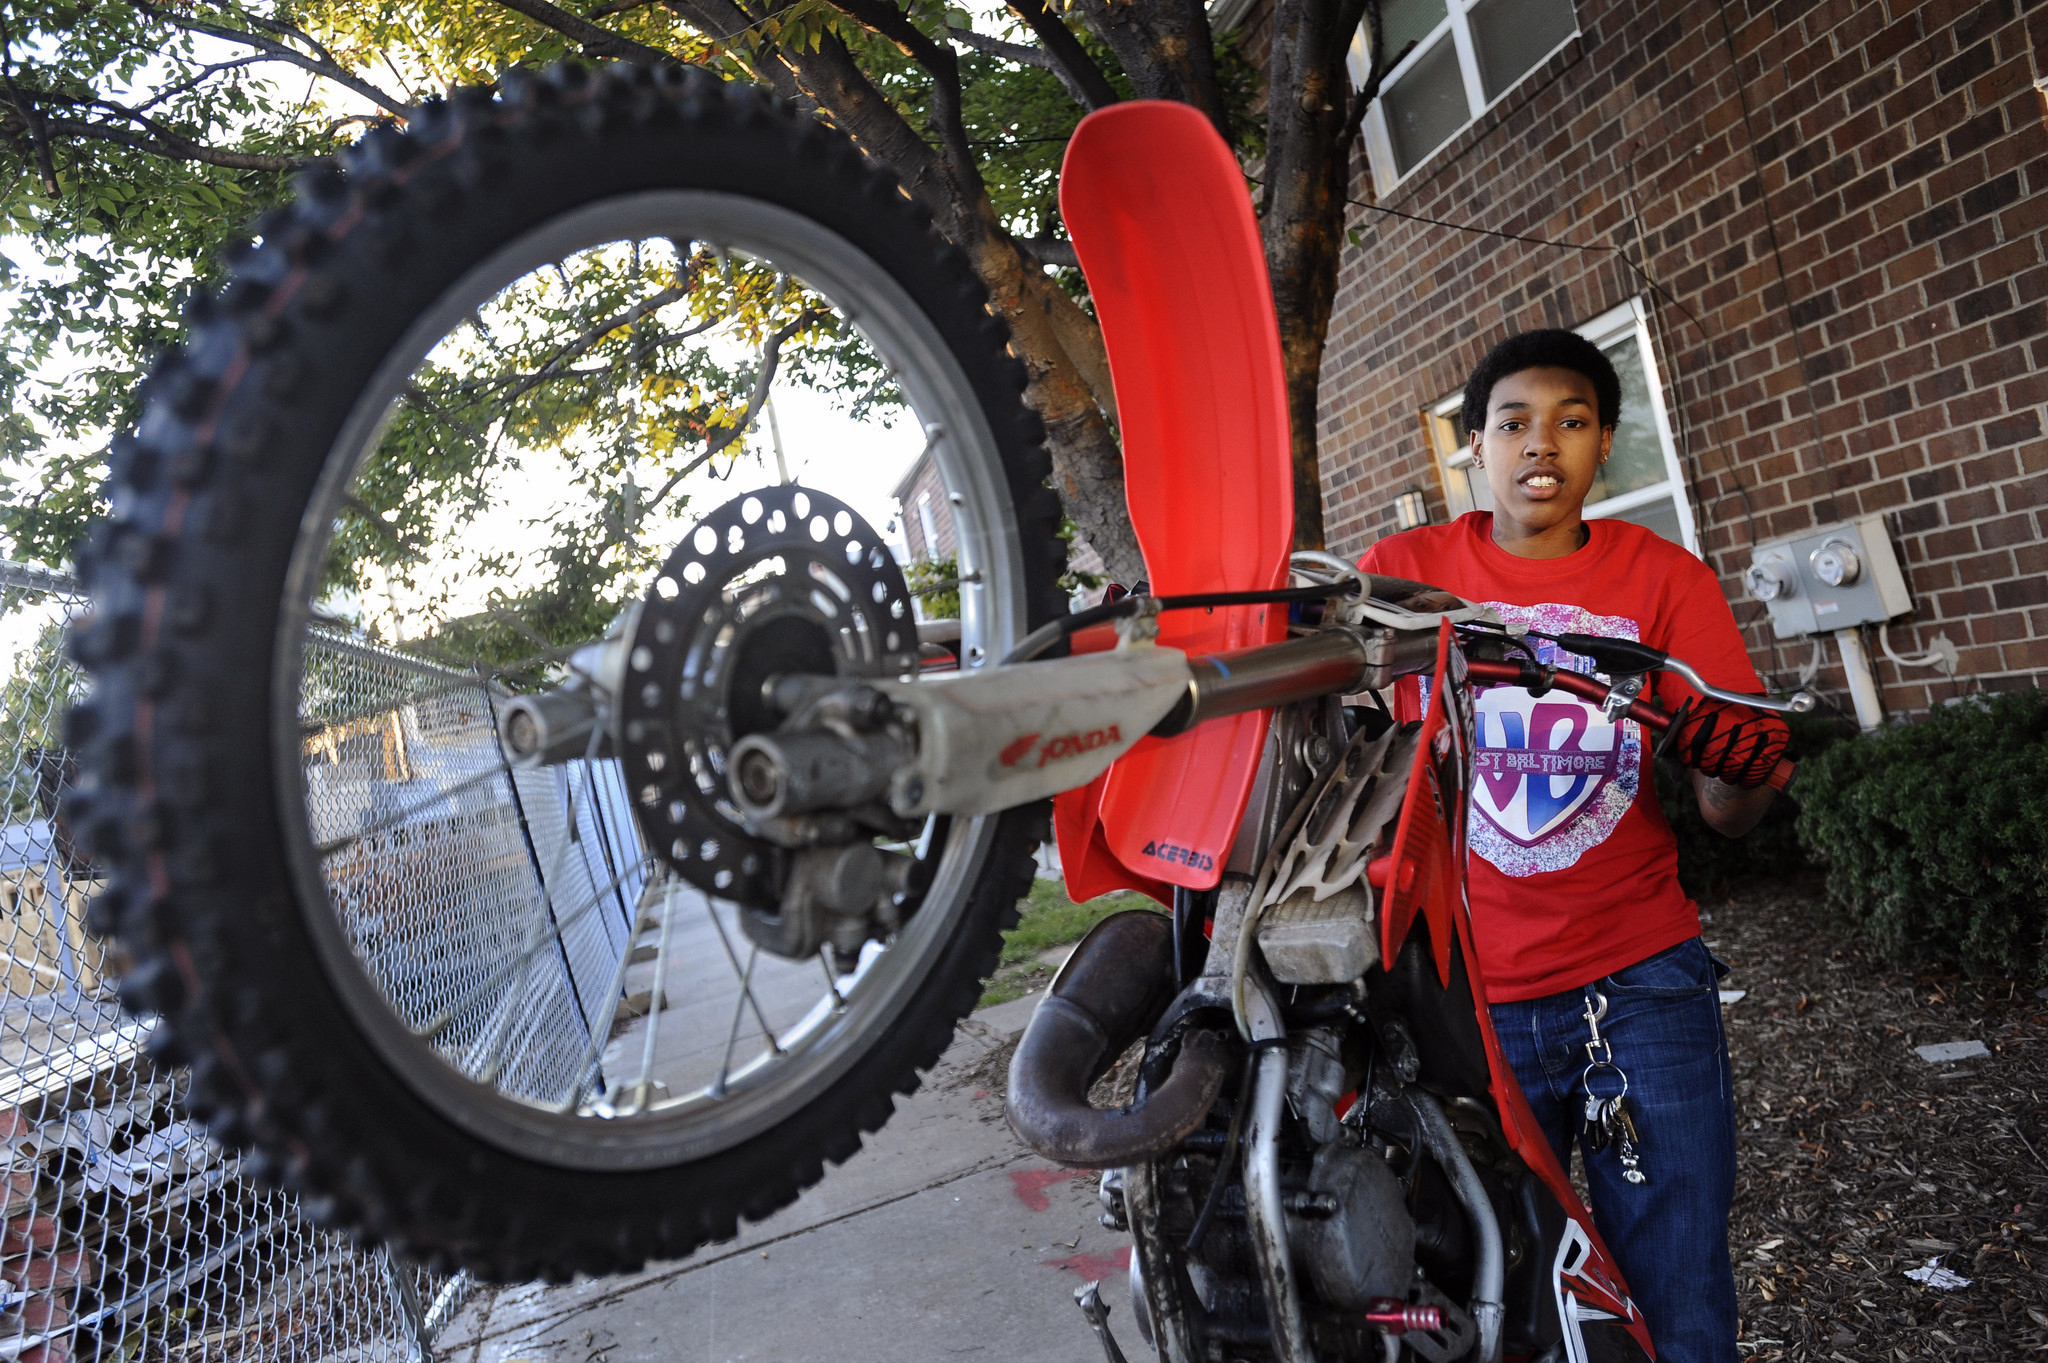 In Popular But Illegal Baltimore Dirt Bike Scene Female Rider